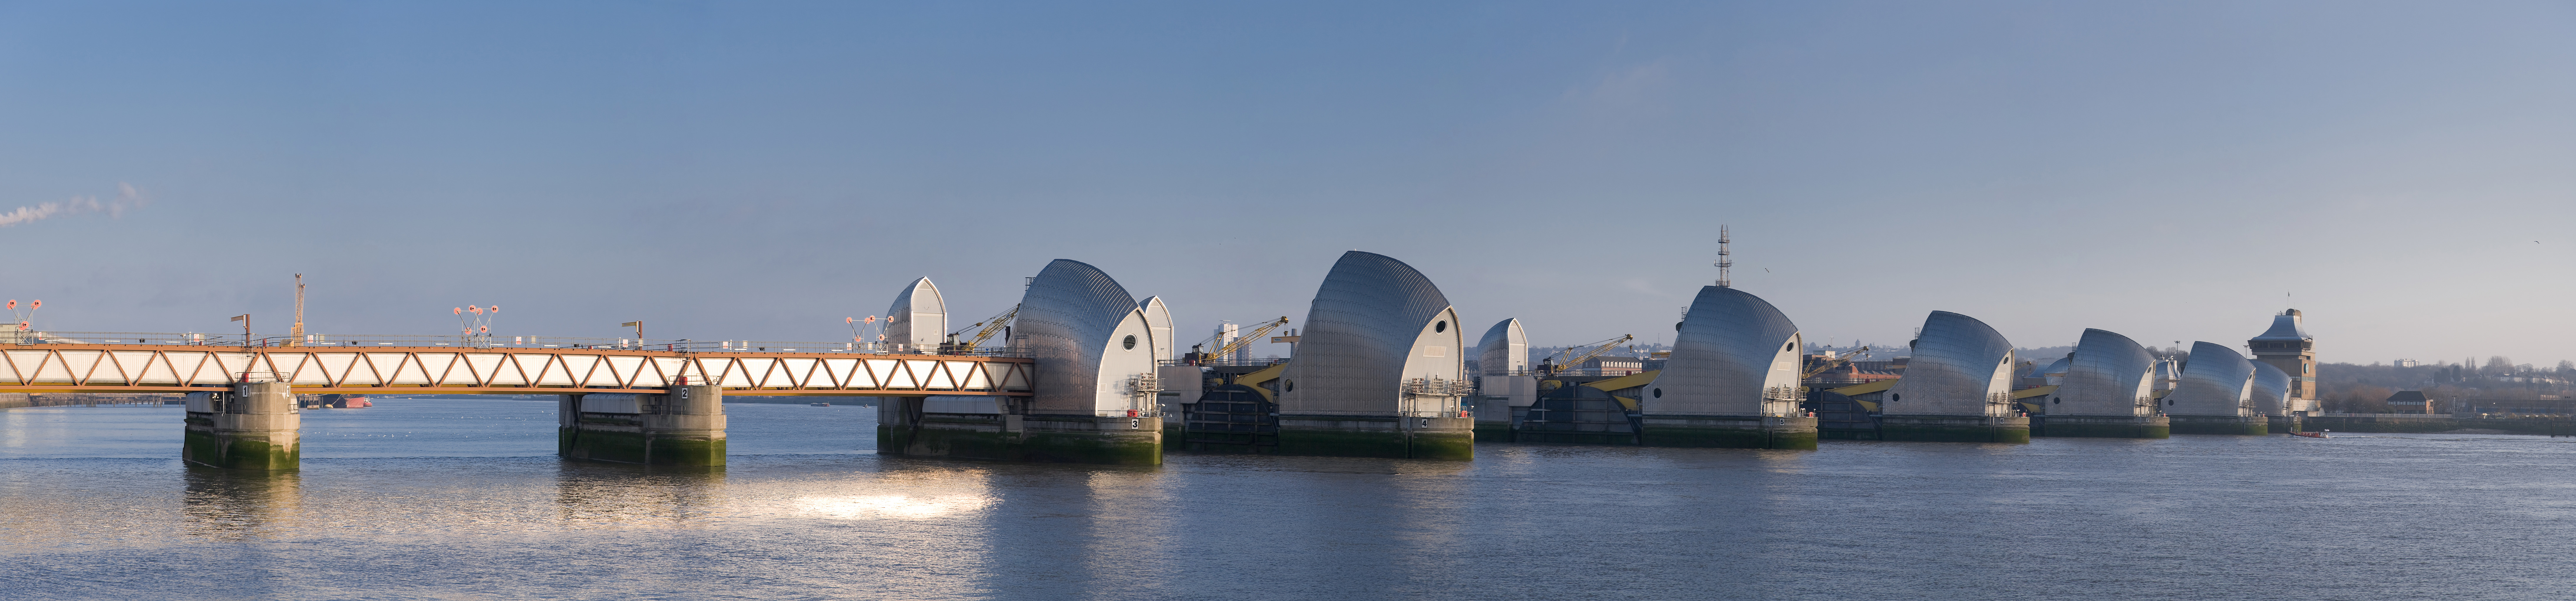 thames barrier flood control The thames barrier is a flood control structure on the river thames at woolwich reach in london it is the world's largest movable flood barrier[] built across a.